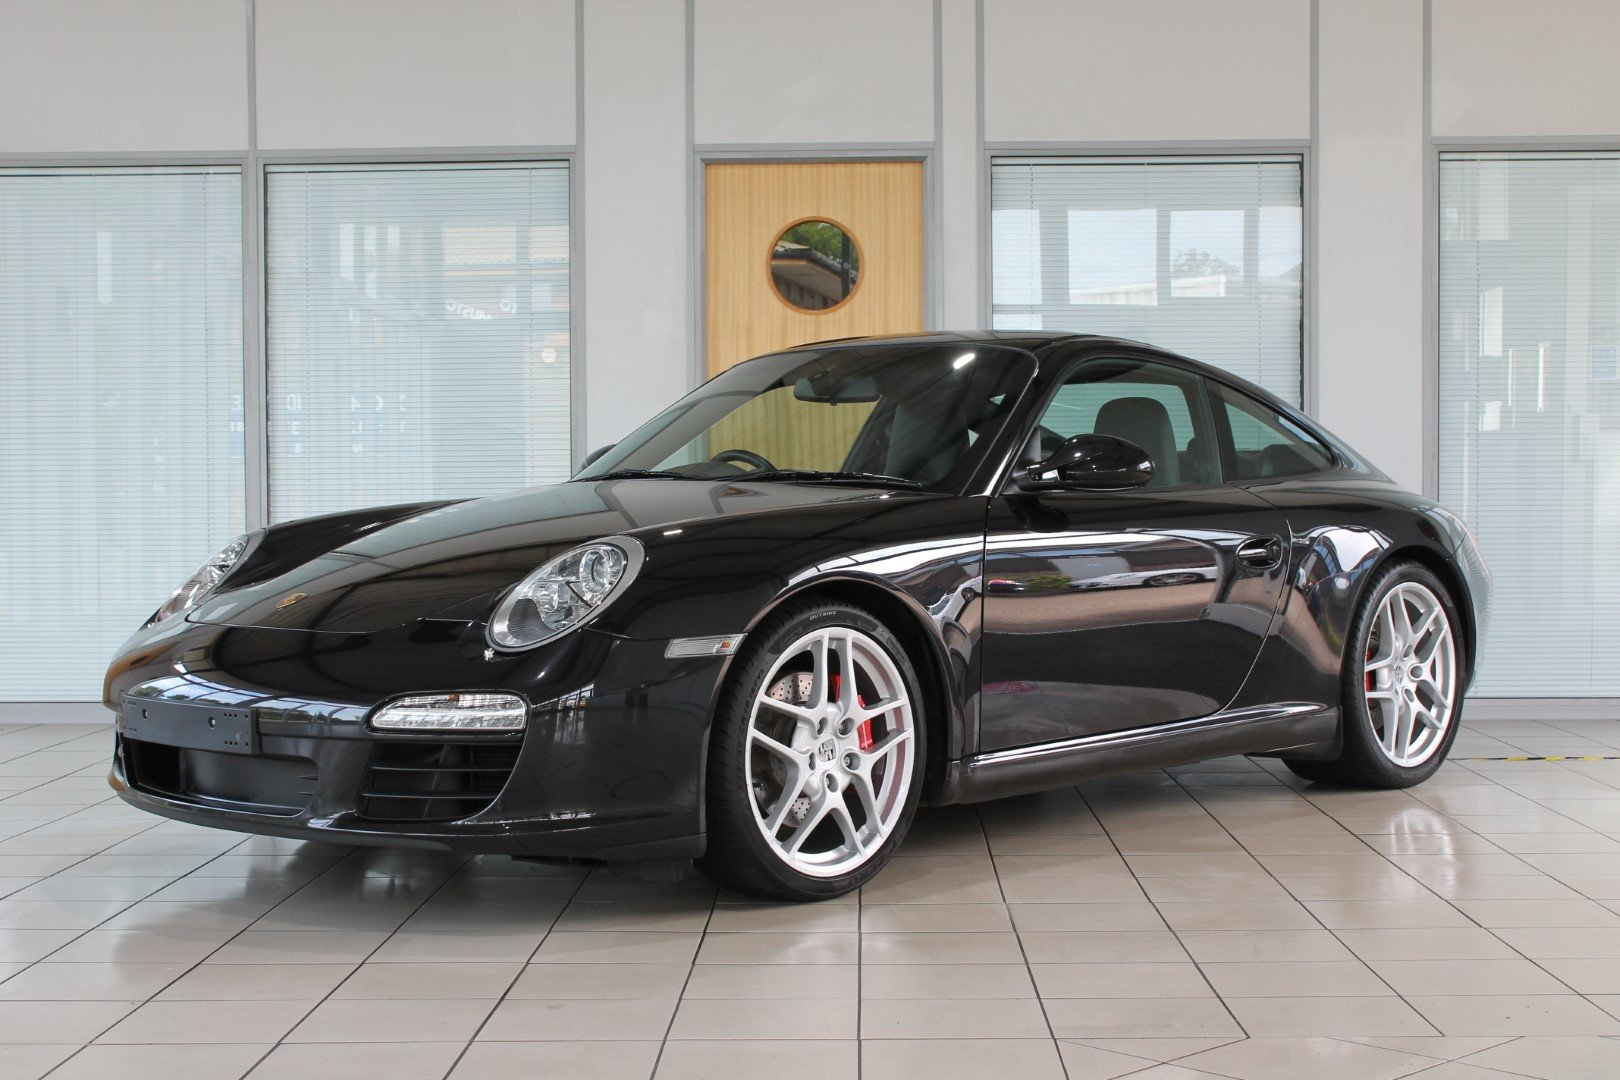 2009 Porsche 911 (997) 3.8 C2S PDK Coupe For Sale (picture 1 of 6)